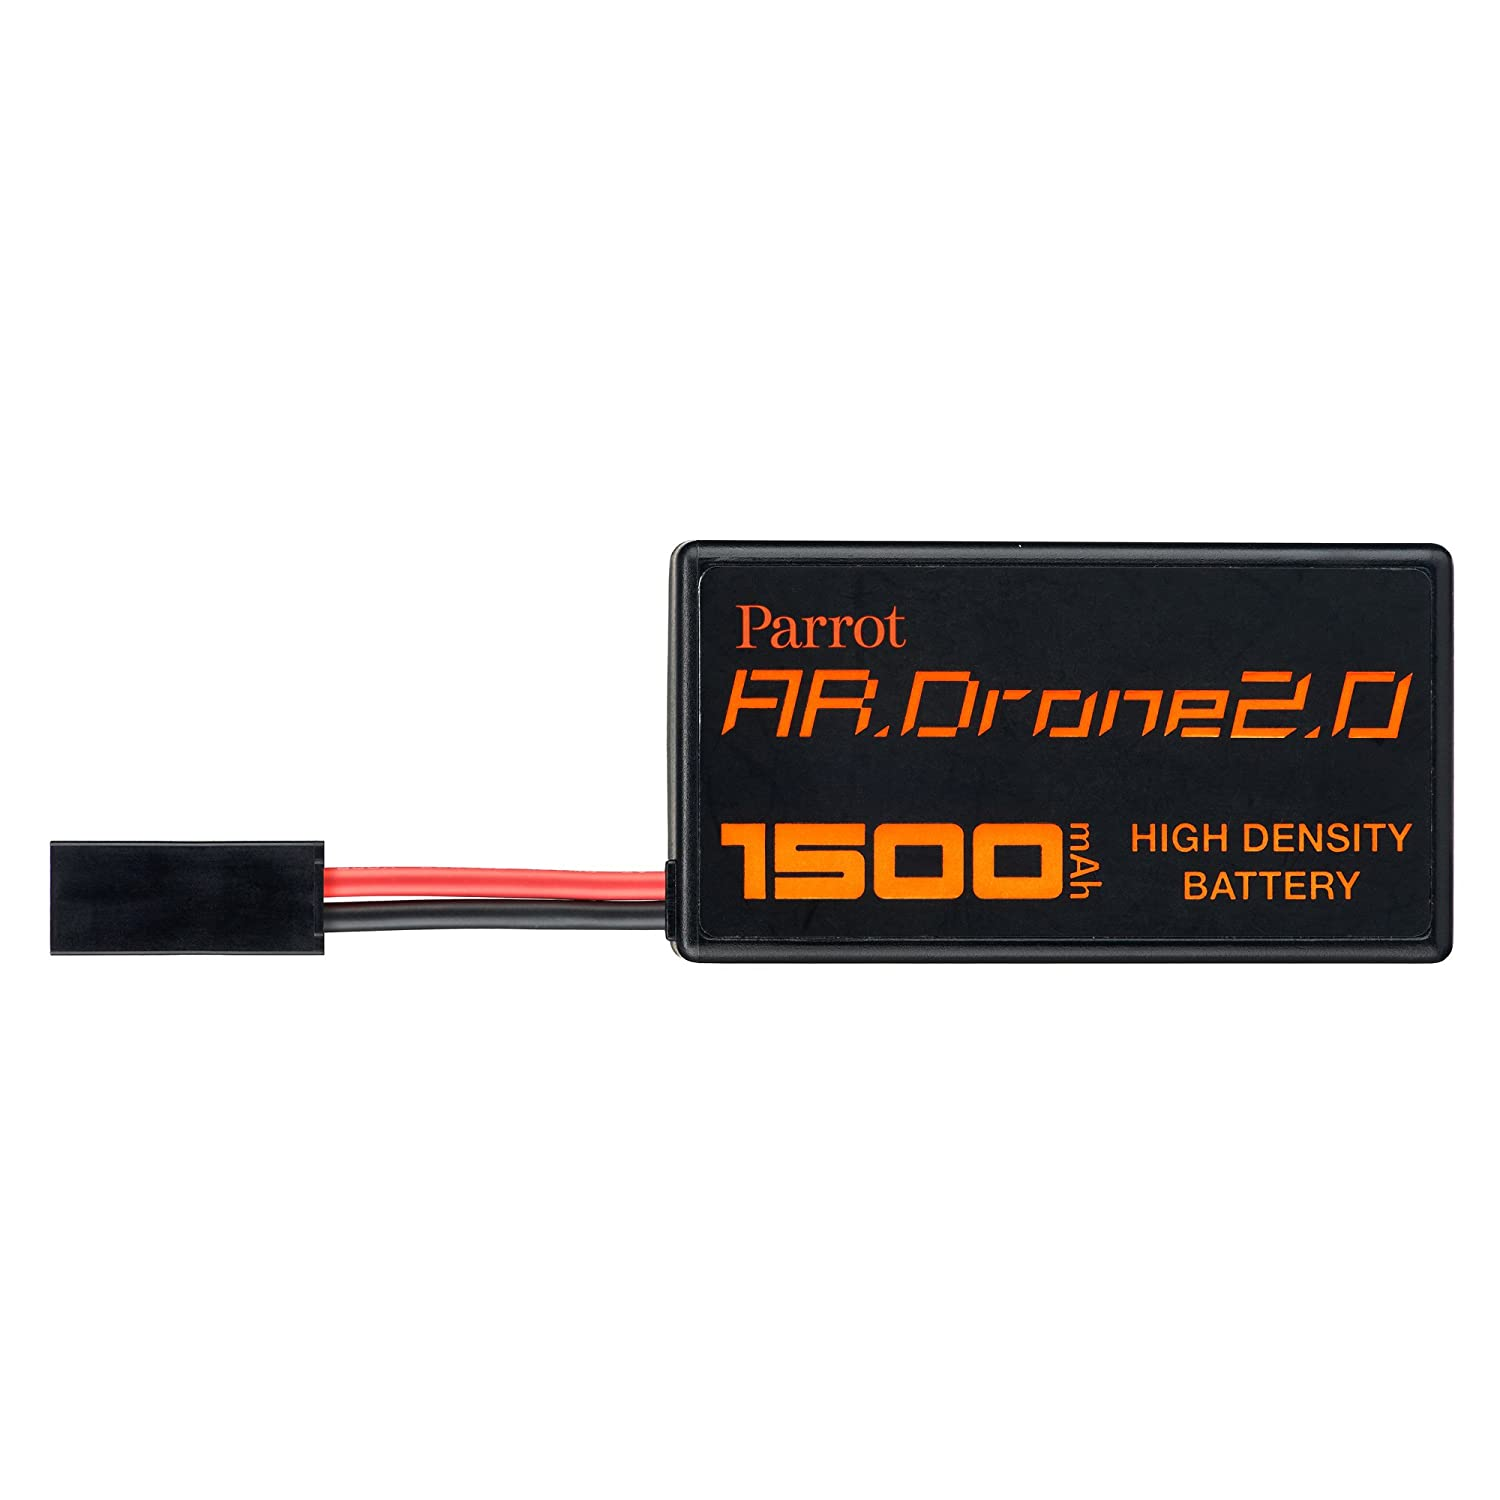 AR.Drone 2.0 - Power Akku (HD Batterie)